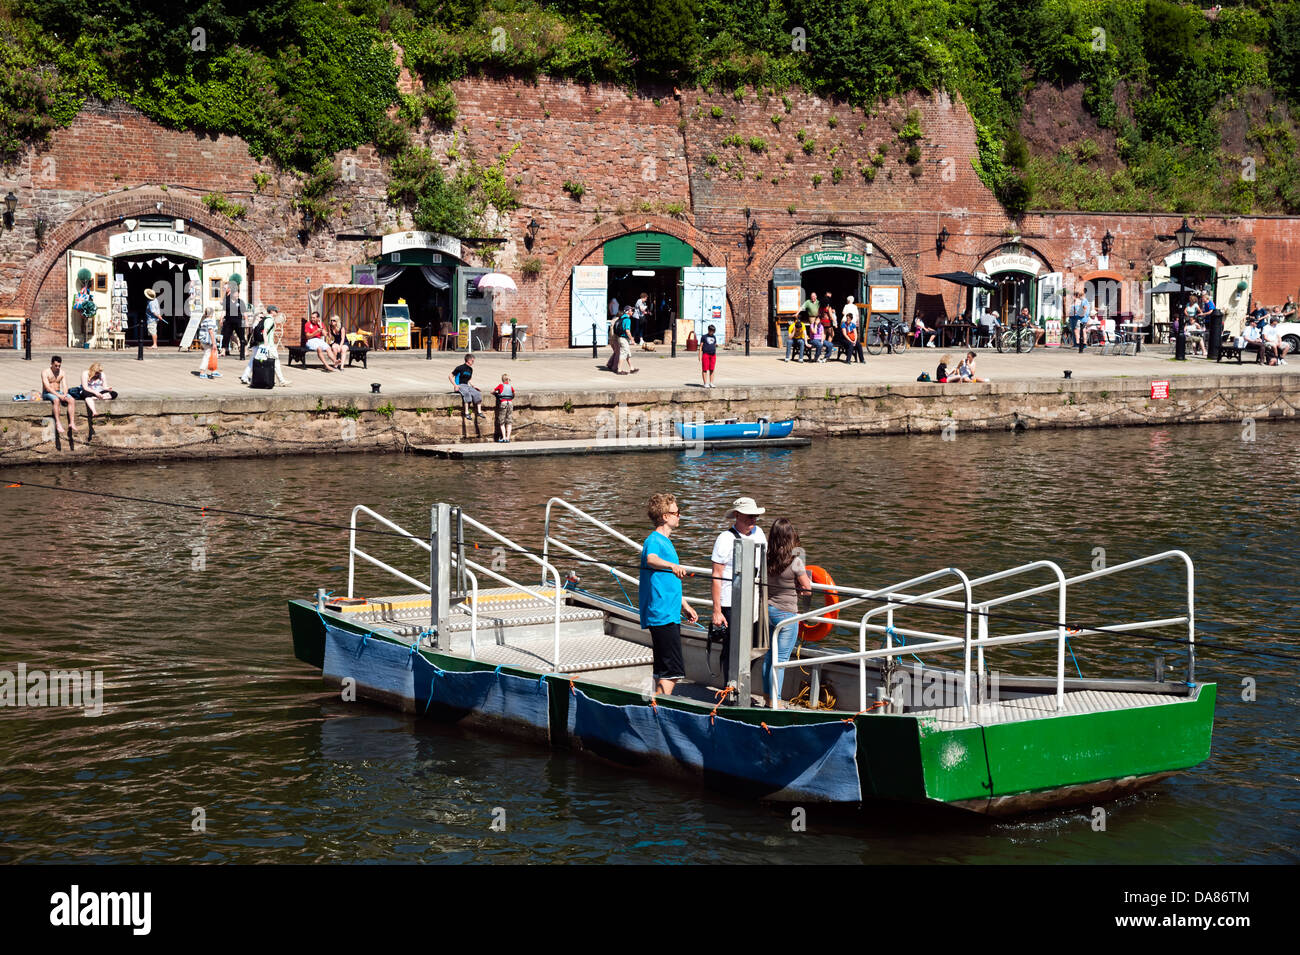 People crossing the river Exe on a ferry at The Quay, Exeter, Devon, UK. - Stock Image